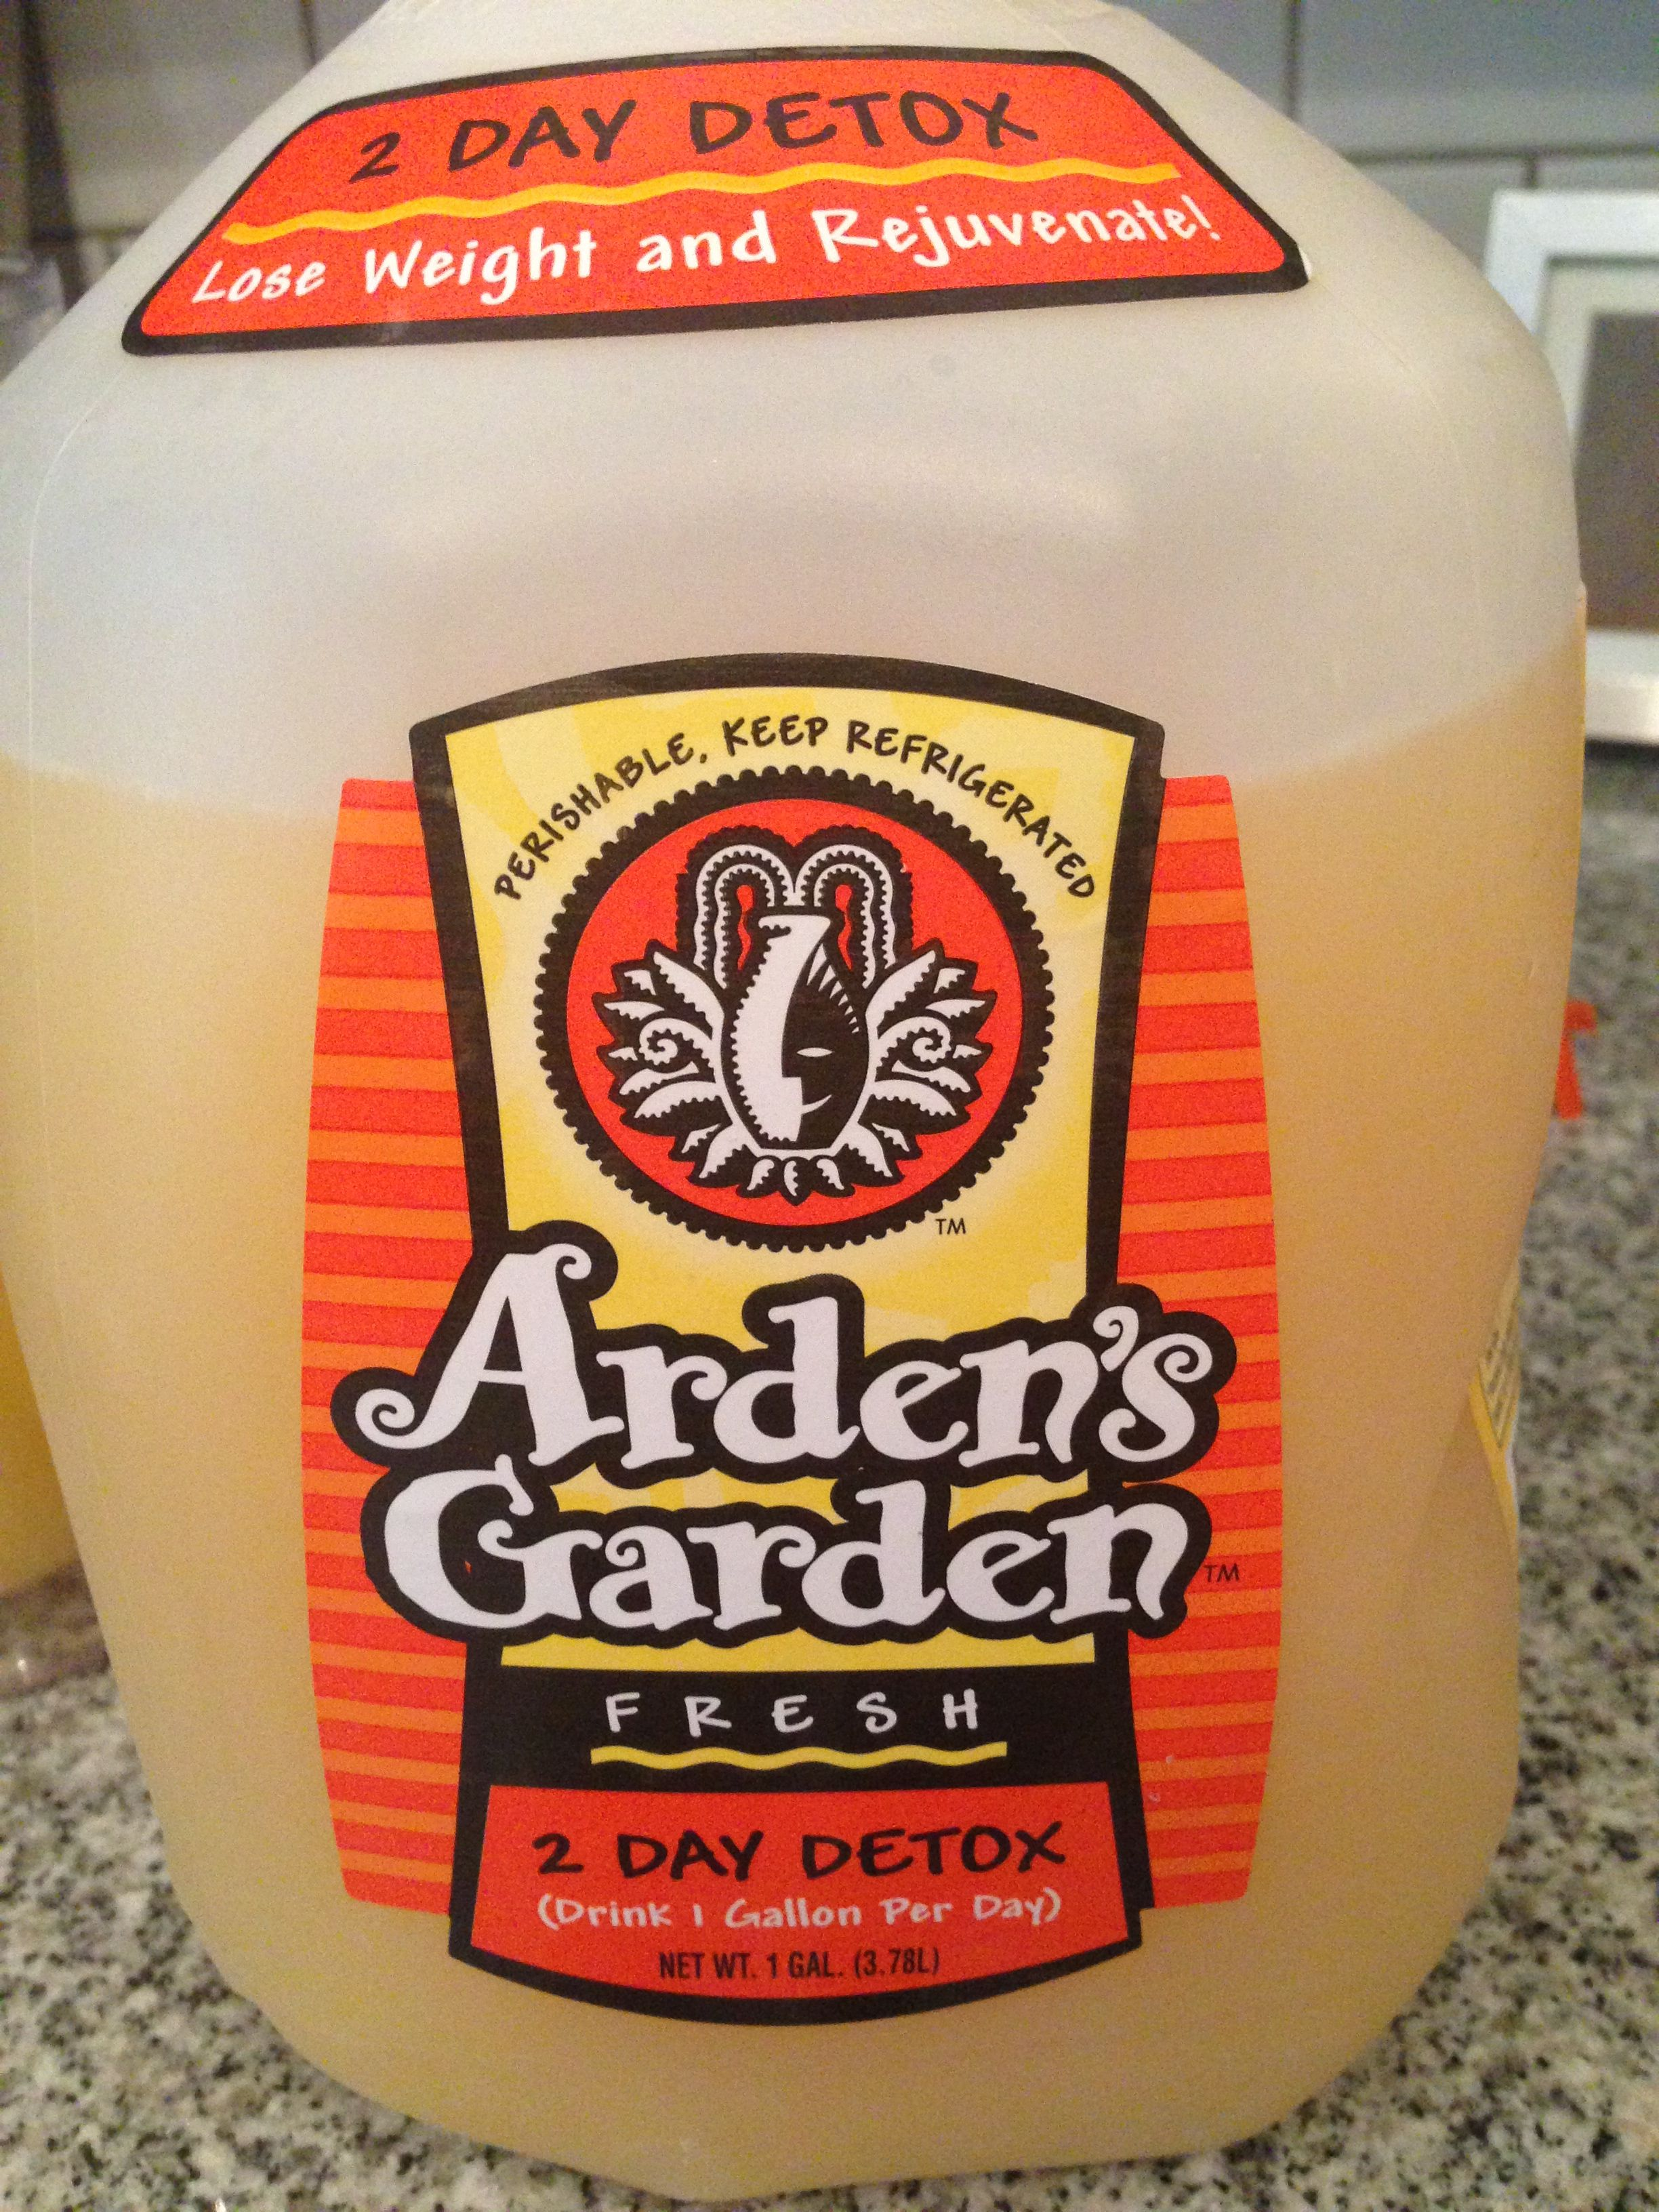 Arden S Garden 2 Day Detox Review Possible Recipe Happy Detoxing 2 Day Detox Detox Detox Reviews